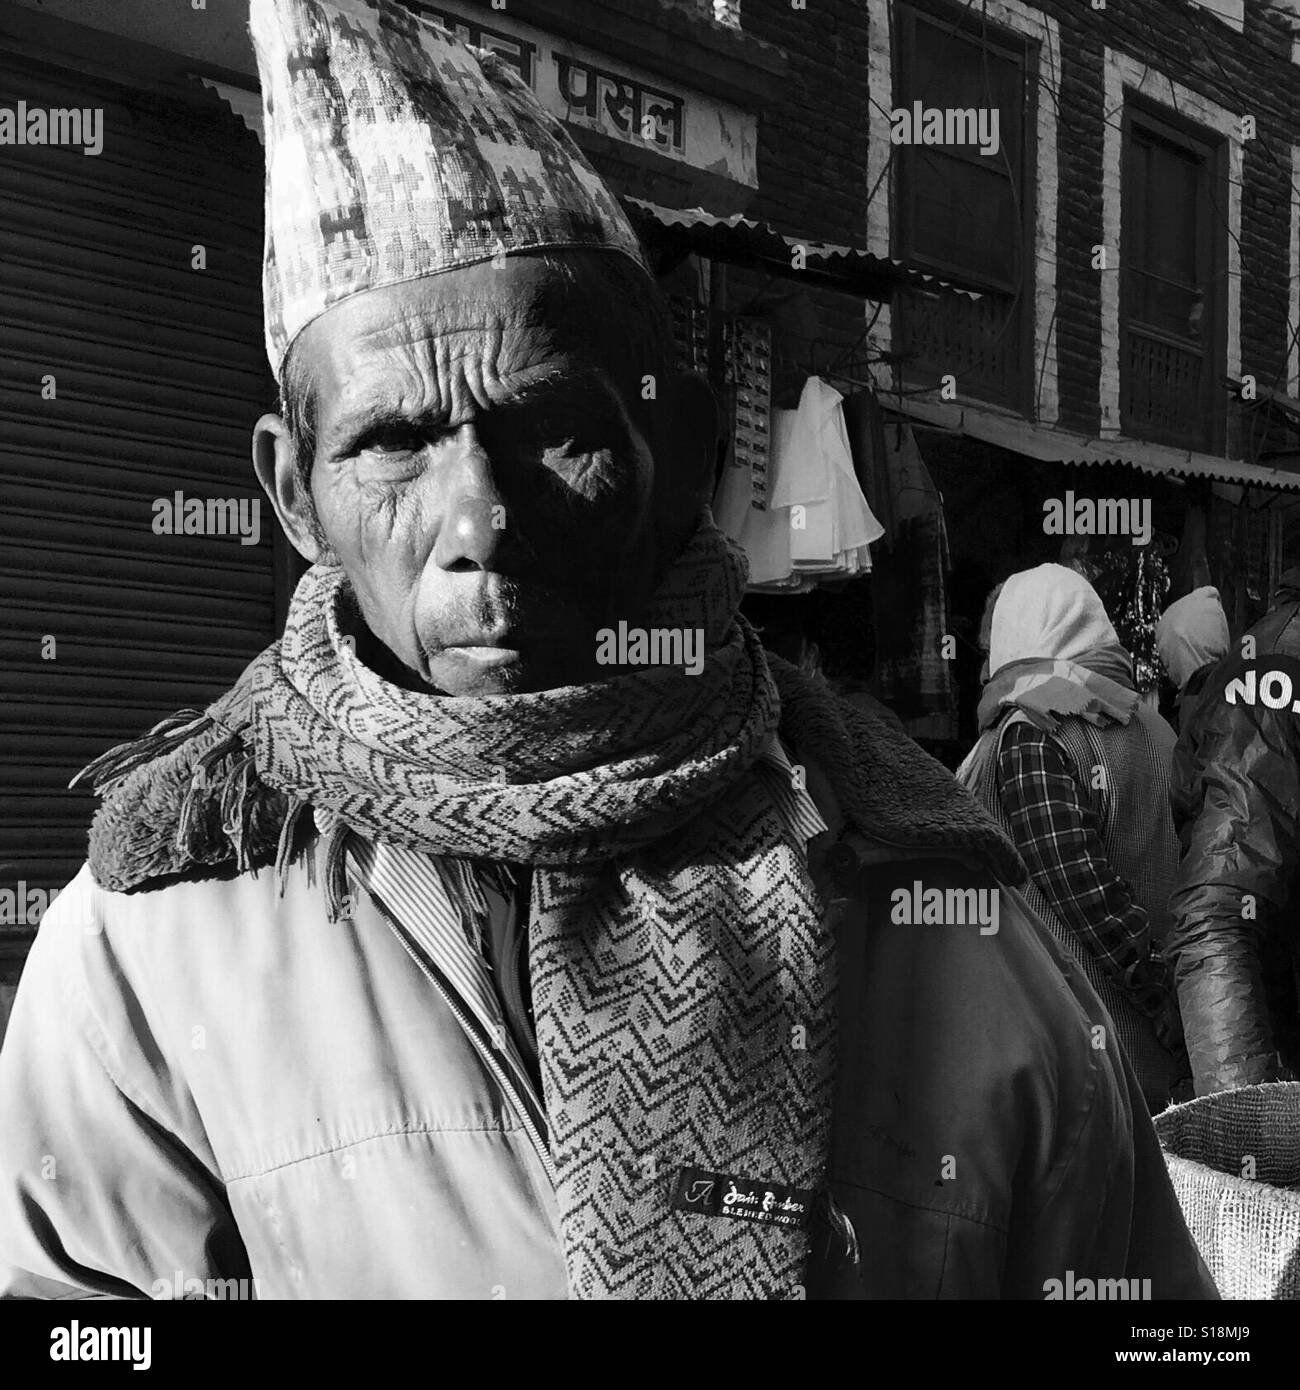 Old Nepali man, 2016 - Stock Image